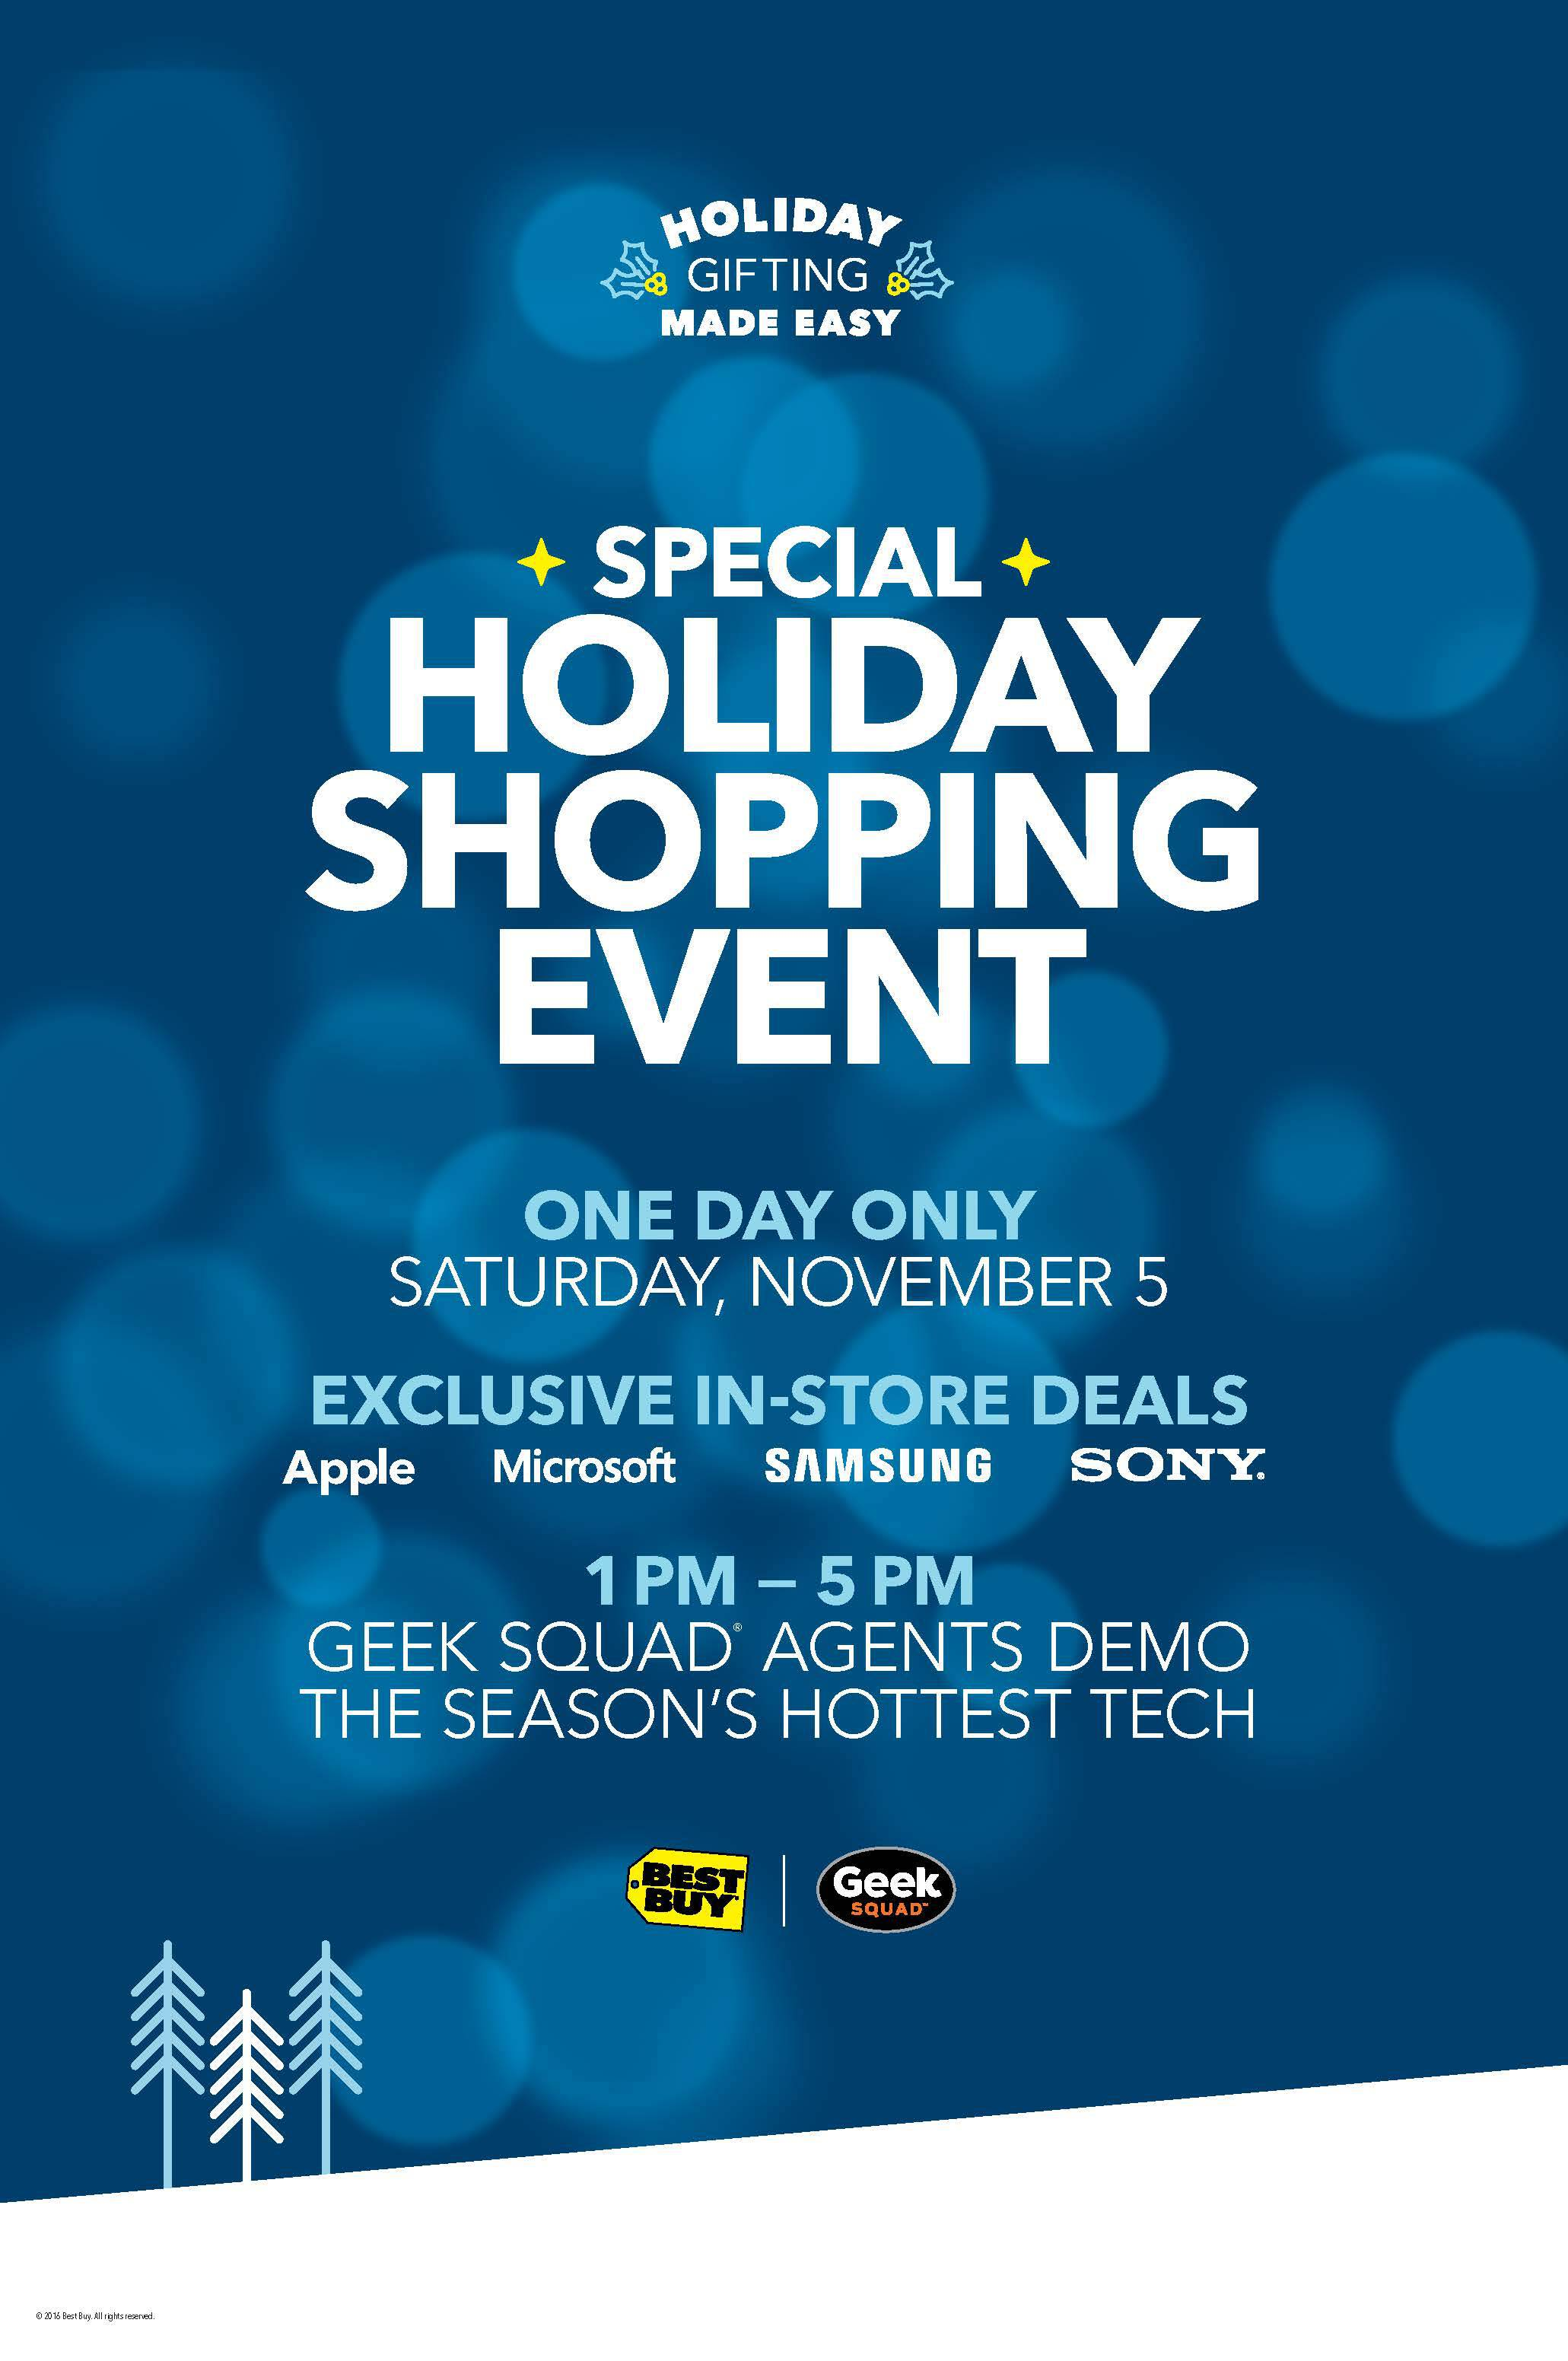 Best Buy's In-Store Holiday Shopping Event is on Saturday November 5, 2016. Hit your local participating store for amazing deals and demos!